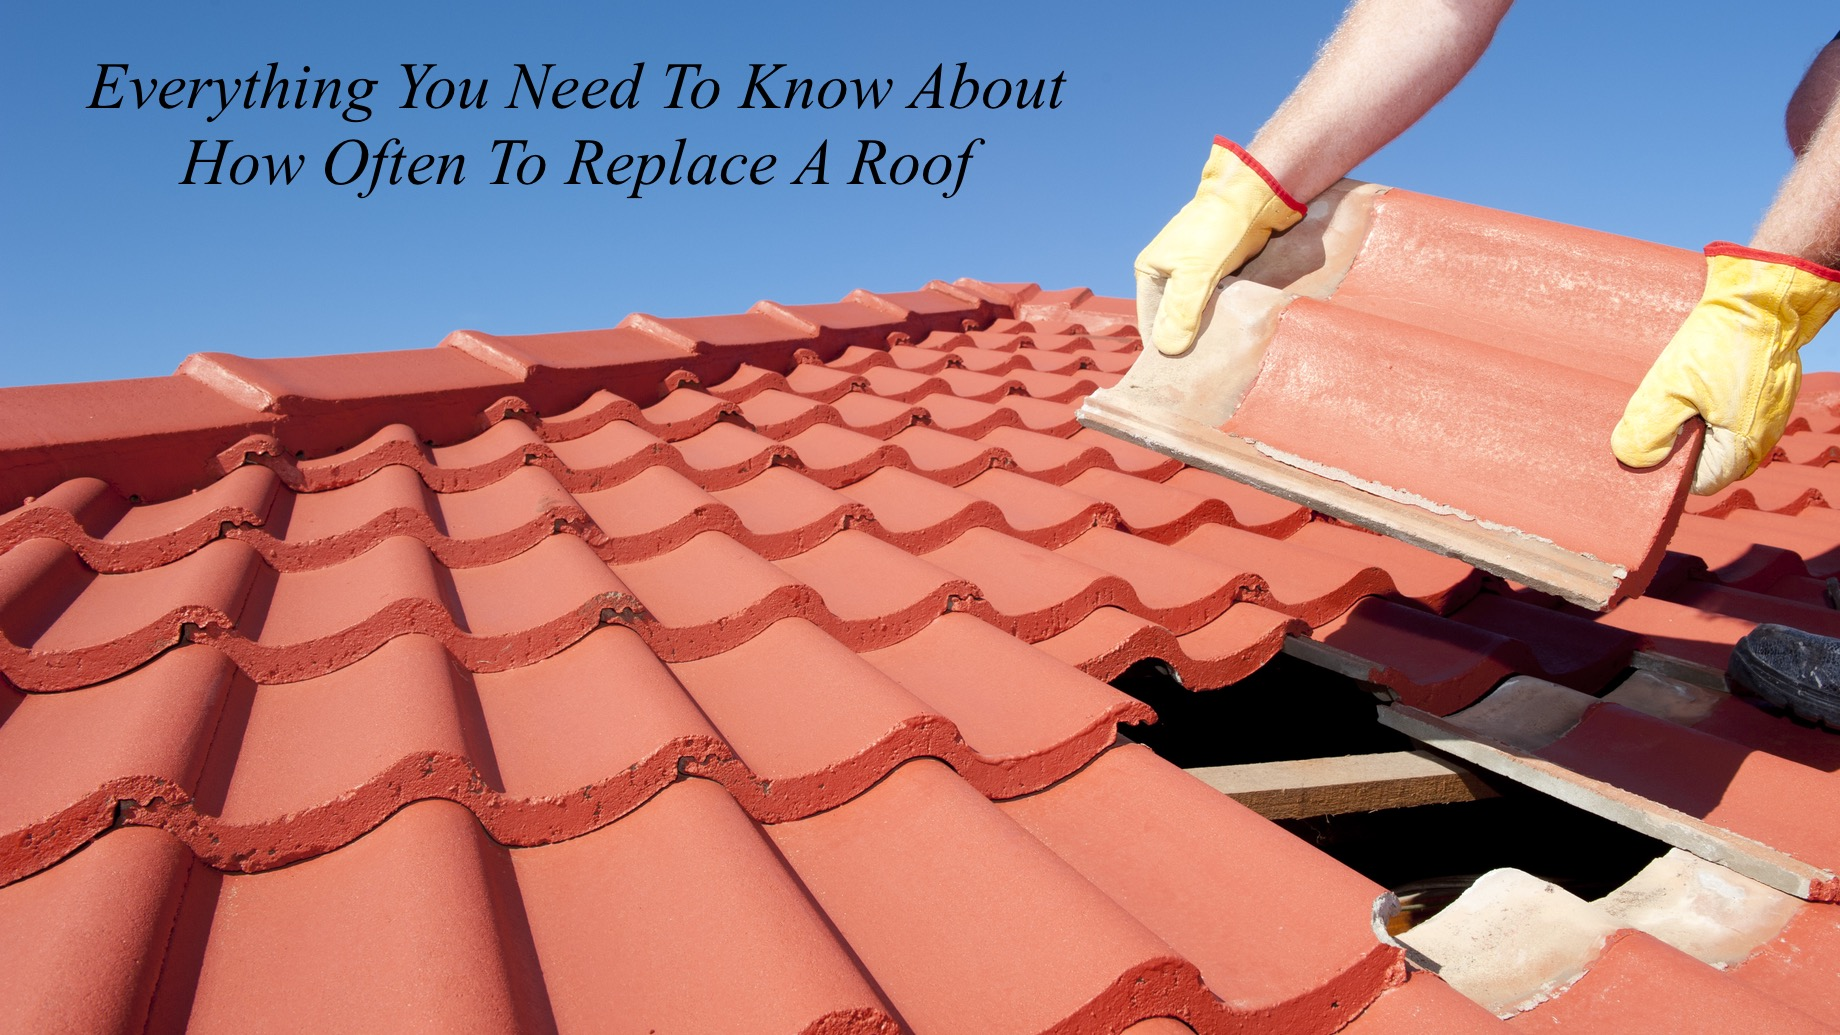 Everything You Need To Know About How Often To Replace A Roof